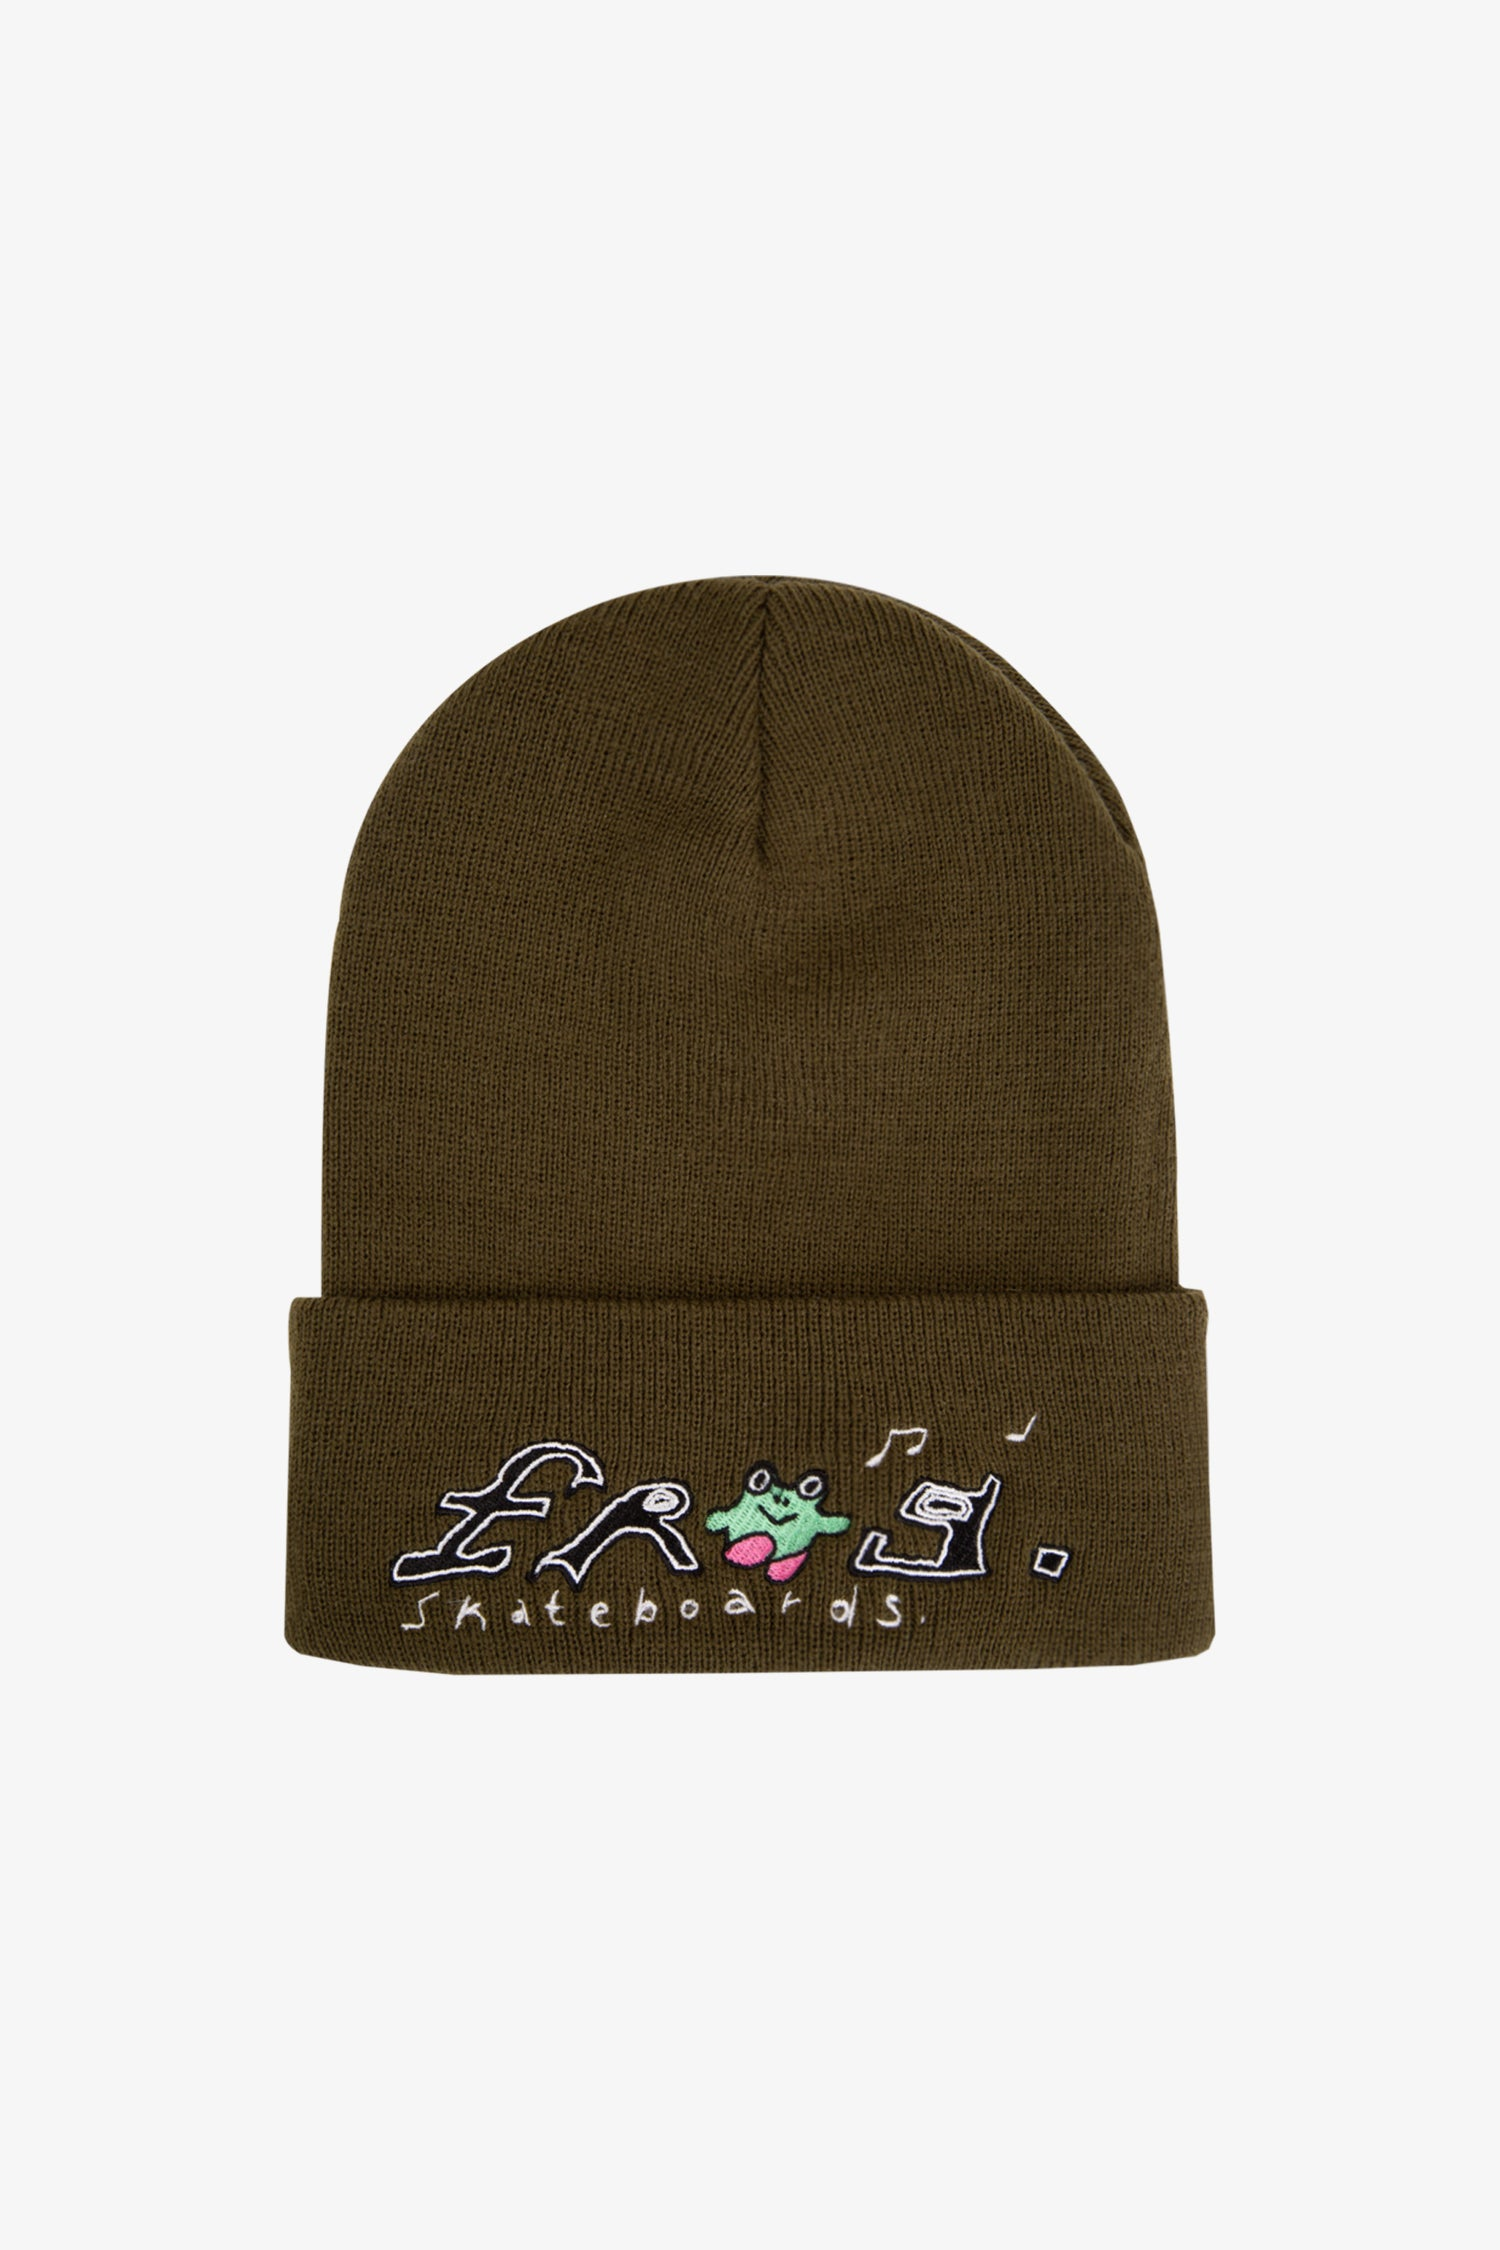 Selectshop FRAME - FROG SKATEBOARDS Happy Dirty Beanie Accessories Dubai